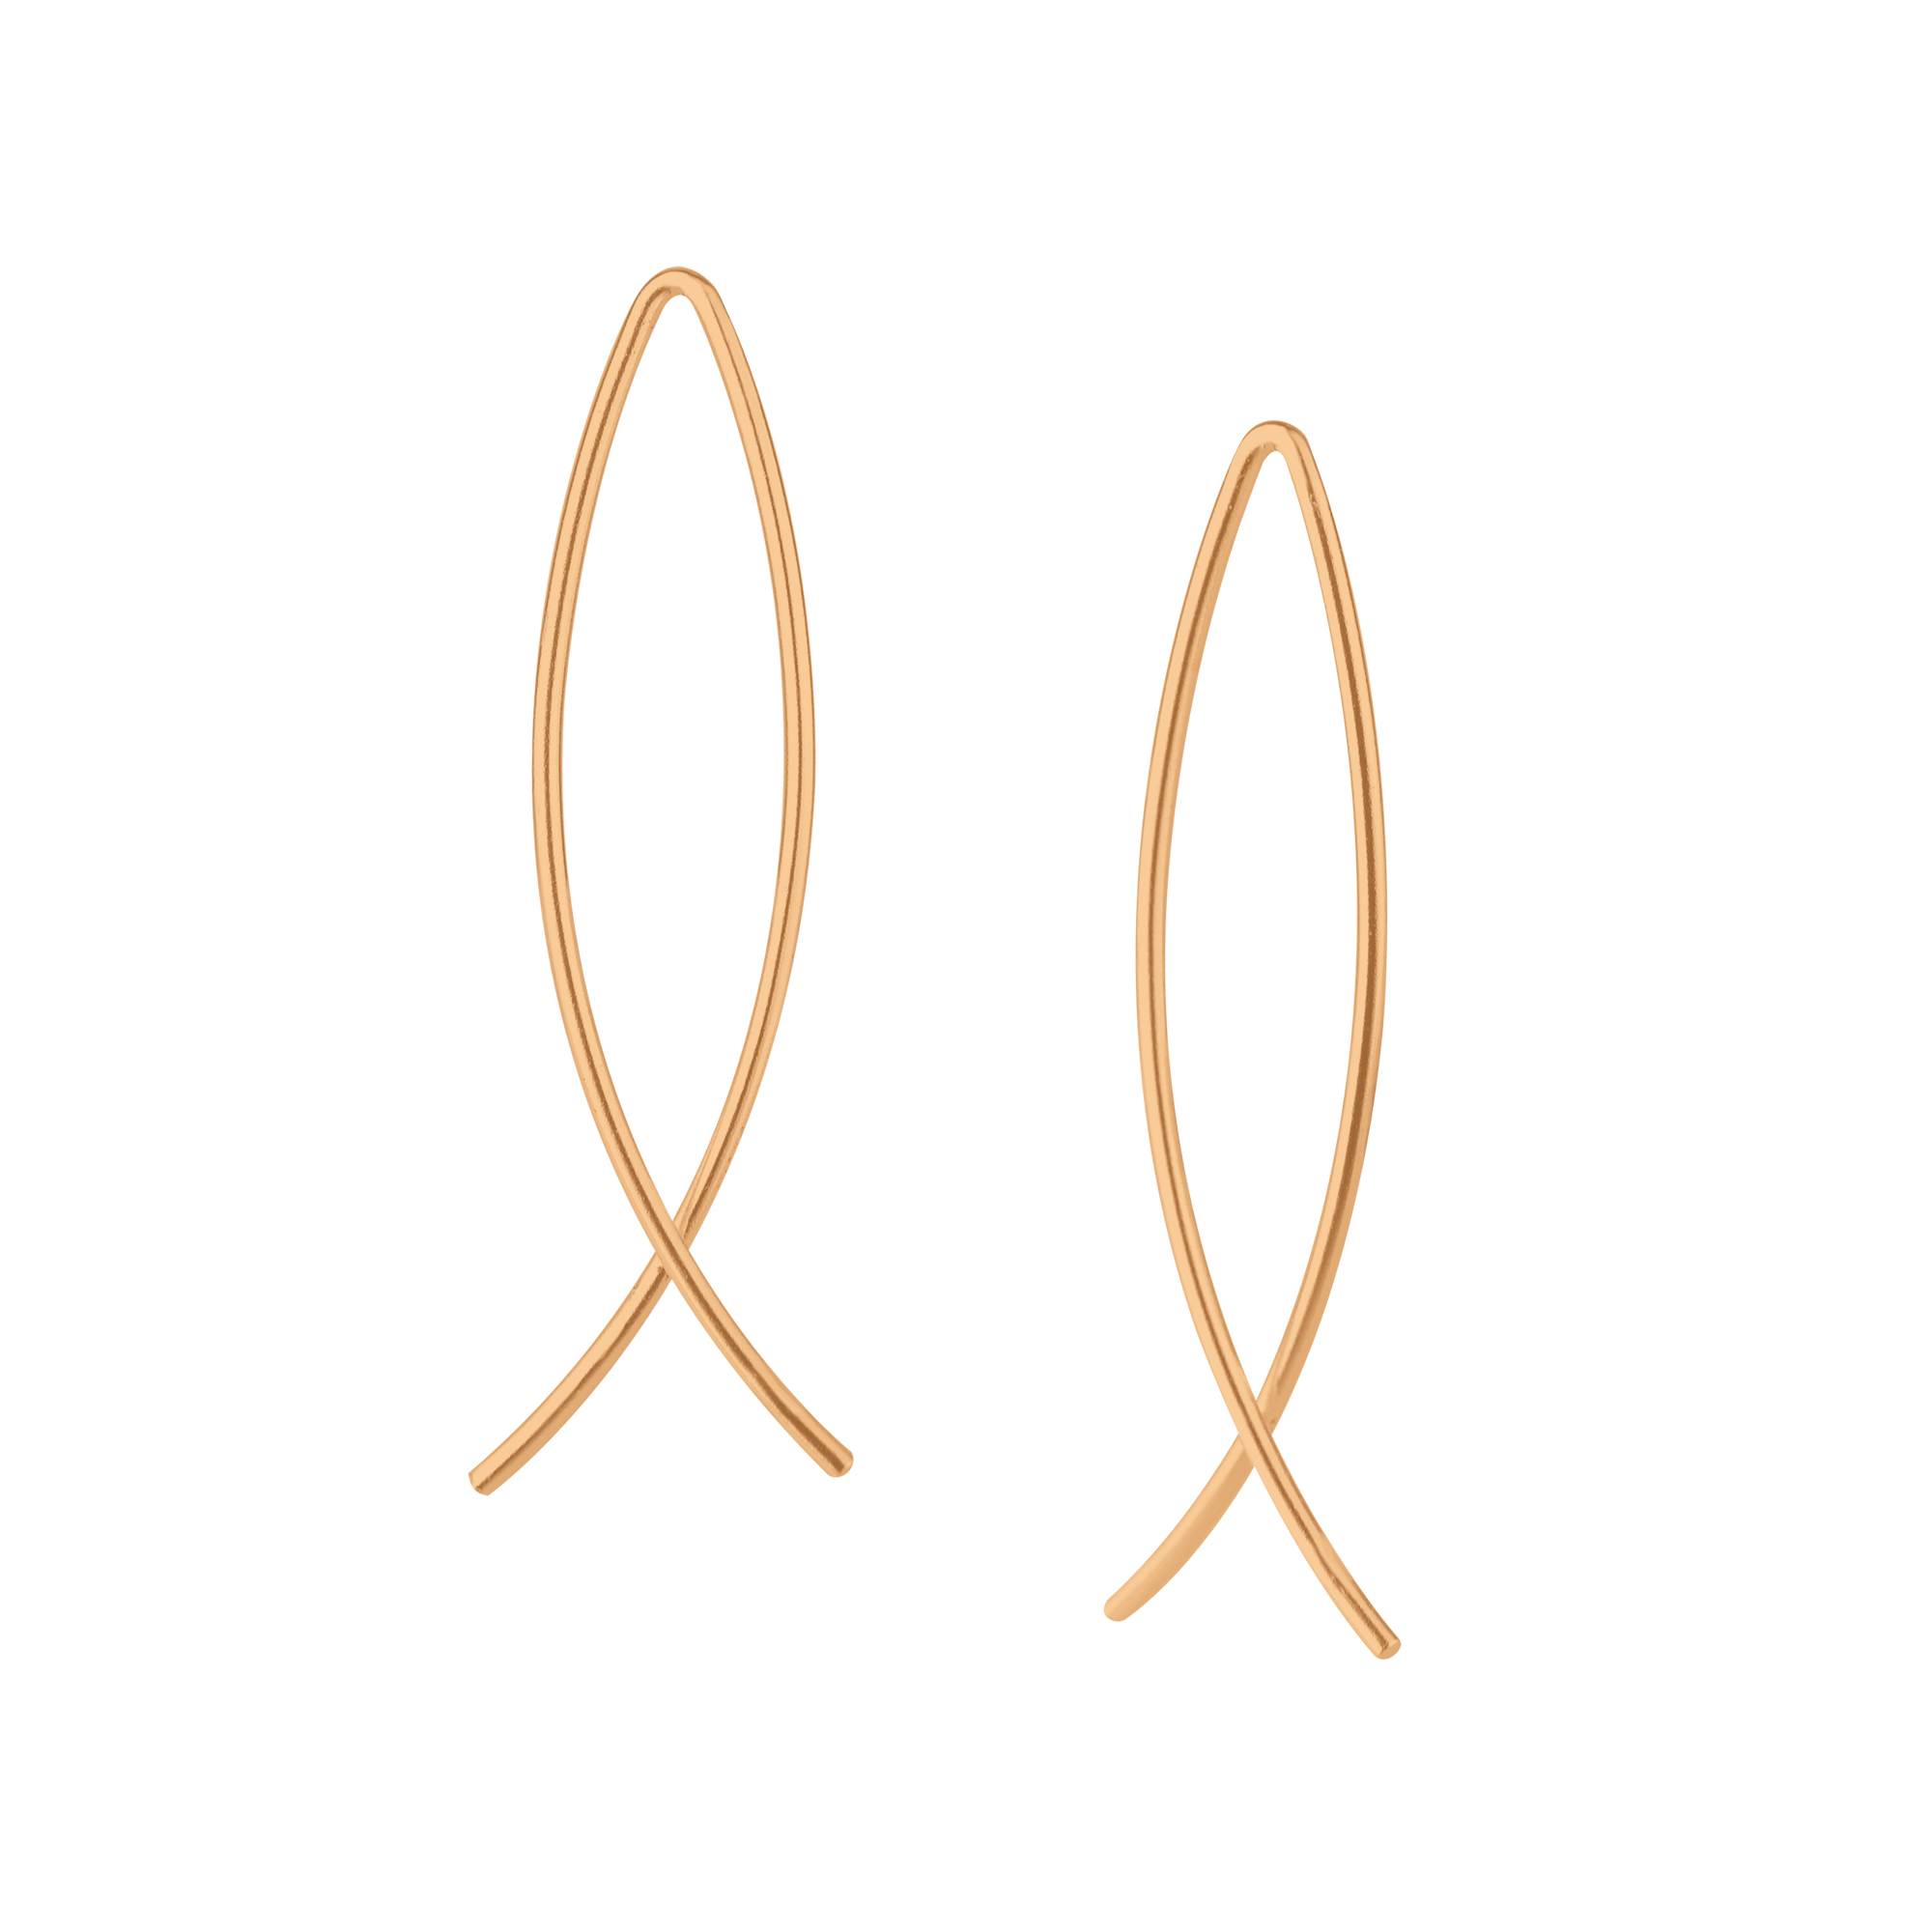 rose gold-plated nickel-free sterling silver marquise shape earrings